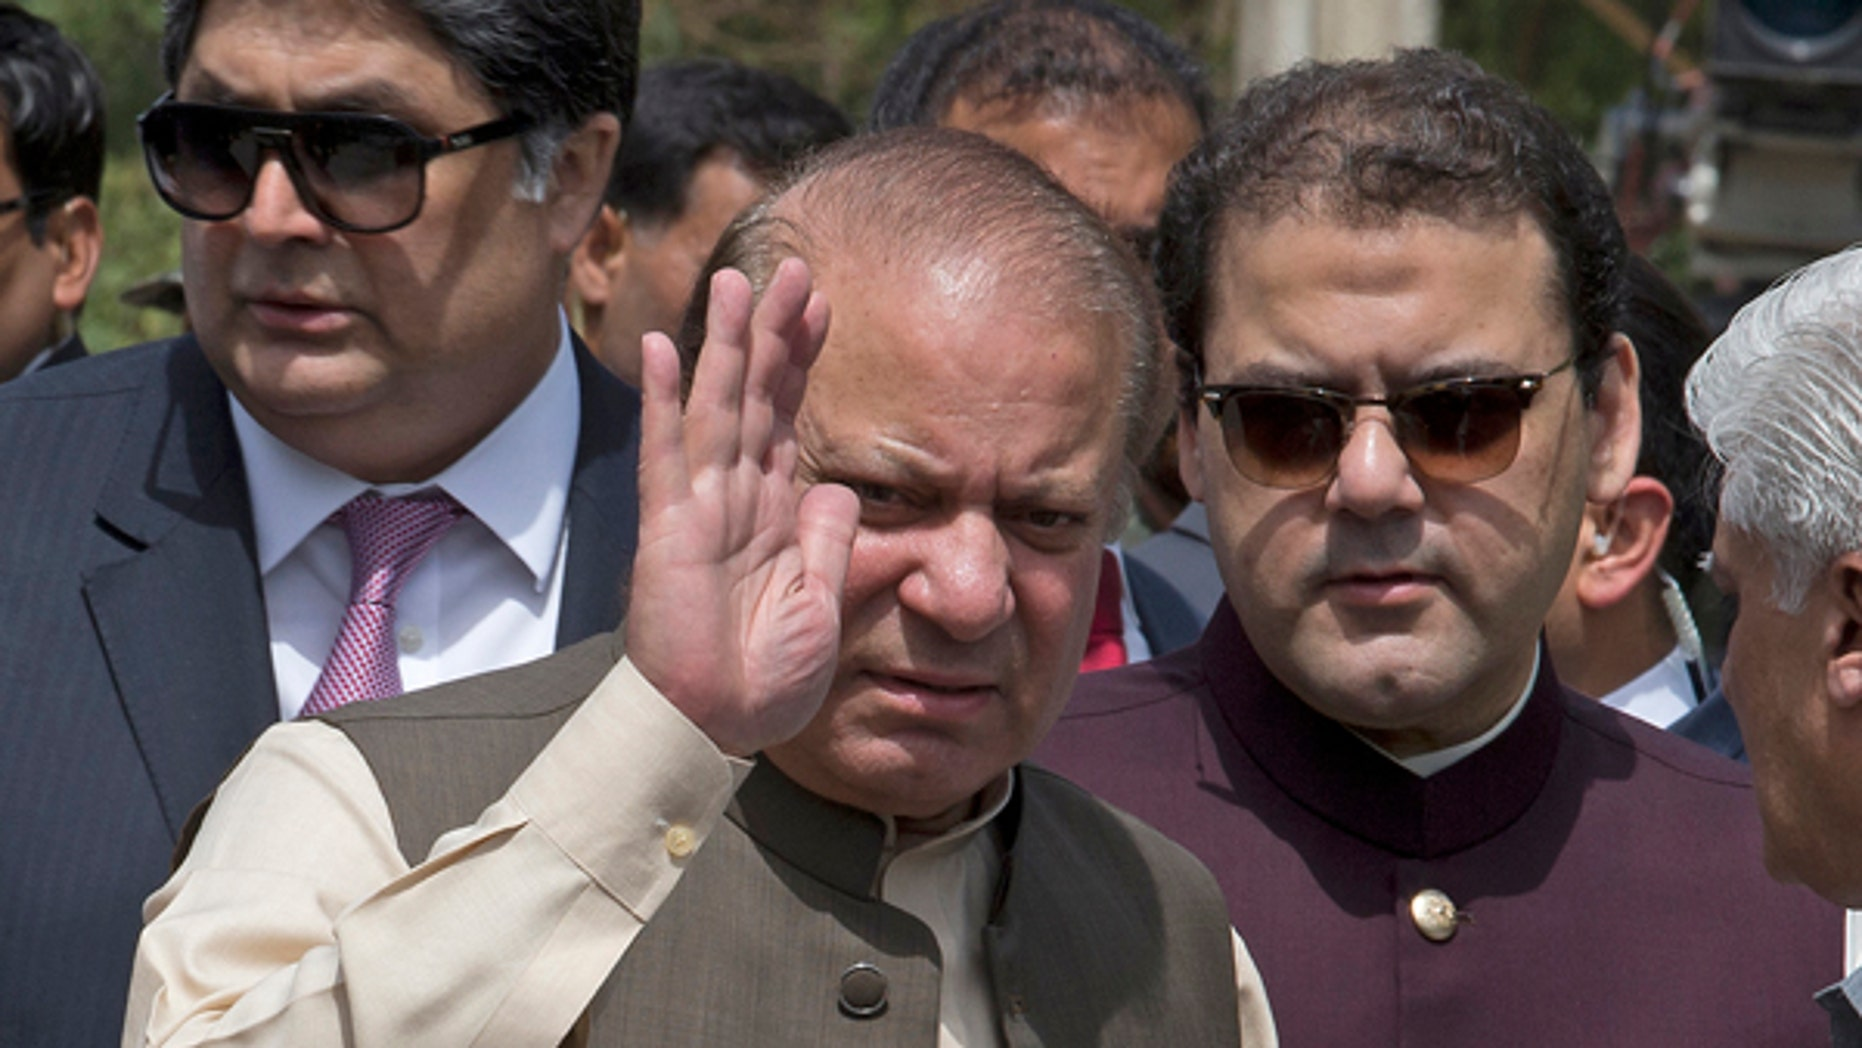 Pakistani Prime Minister Nawaz Sharif waves with his son Hussain Nawaz, right, outside the premises of the Joint Investigation Team, in Islamabad, Pakistan.